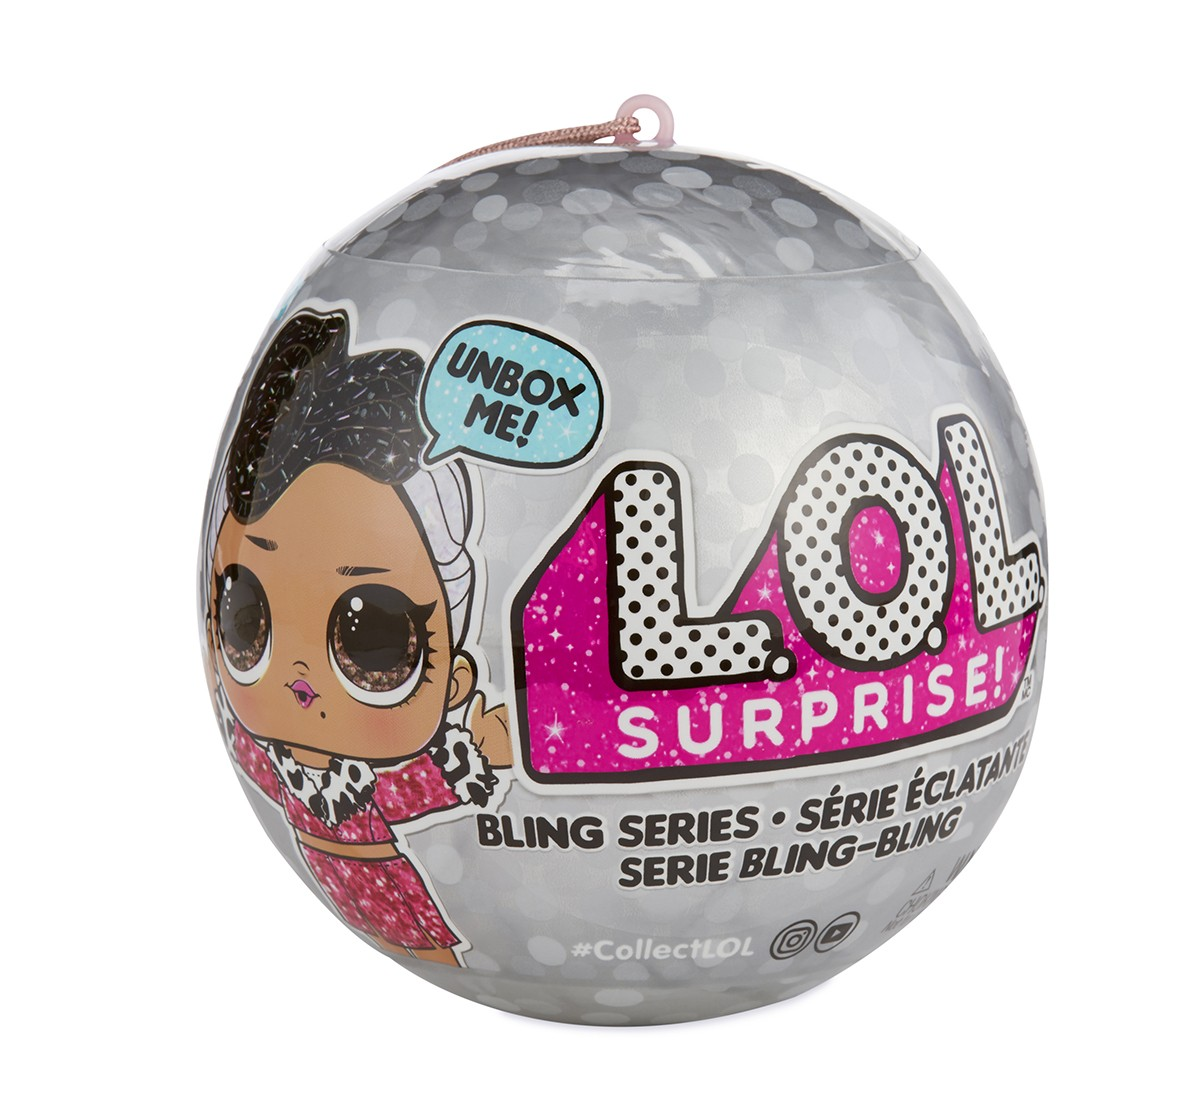 Lol Surprise Bling Series Collectible Dolls for Girls age 3Y+